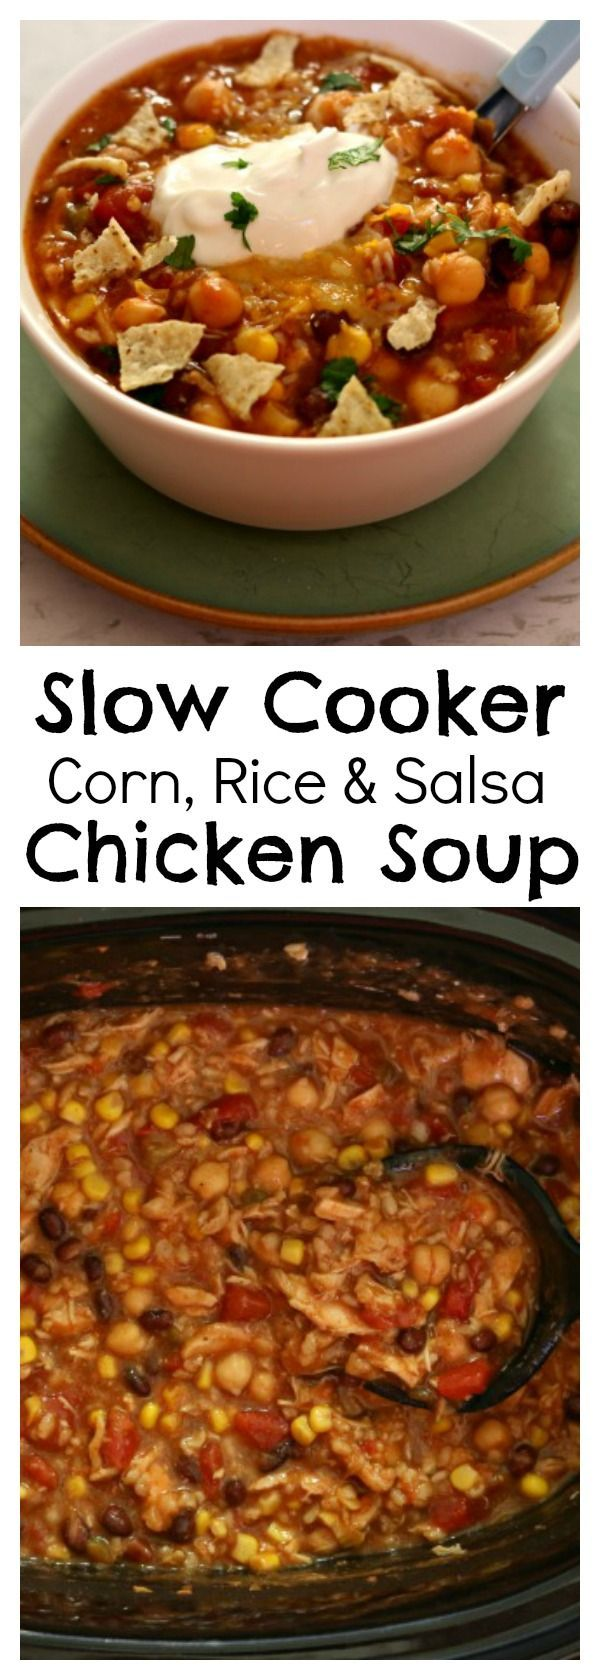 Slow Cooker Corn Rice Salsa Chicken Soup–a thick taco soup with tender, moist pieces of chicken, chewy brown rice, sweet corn, creamy chickpeas, spicy salsa and black beans.